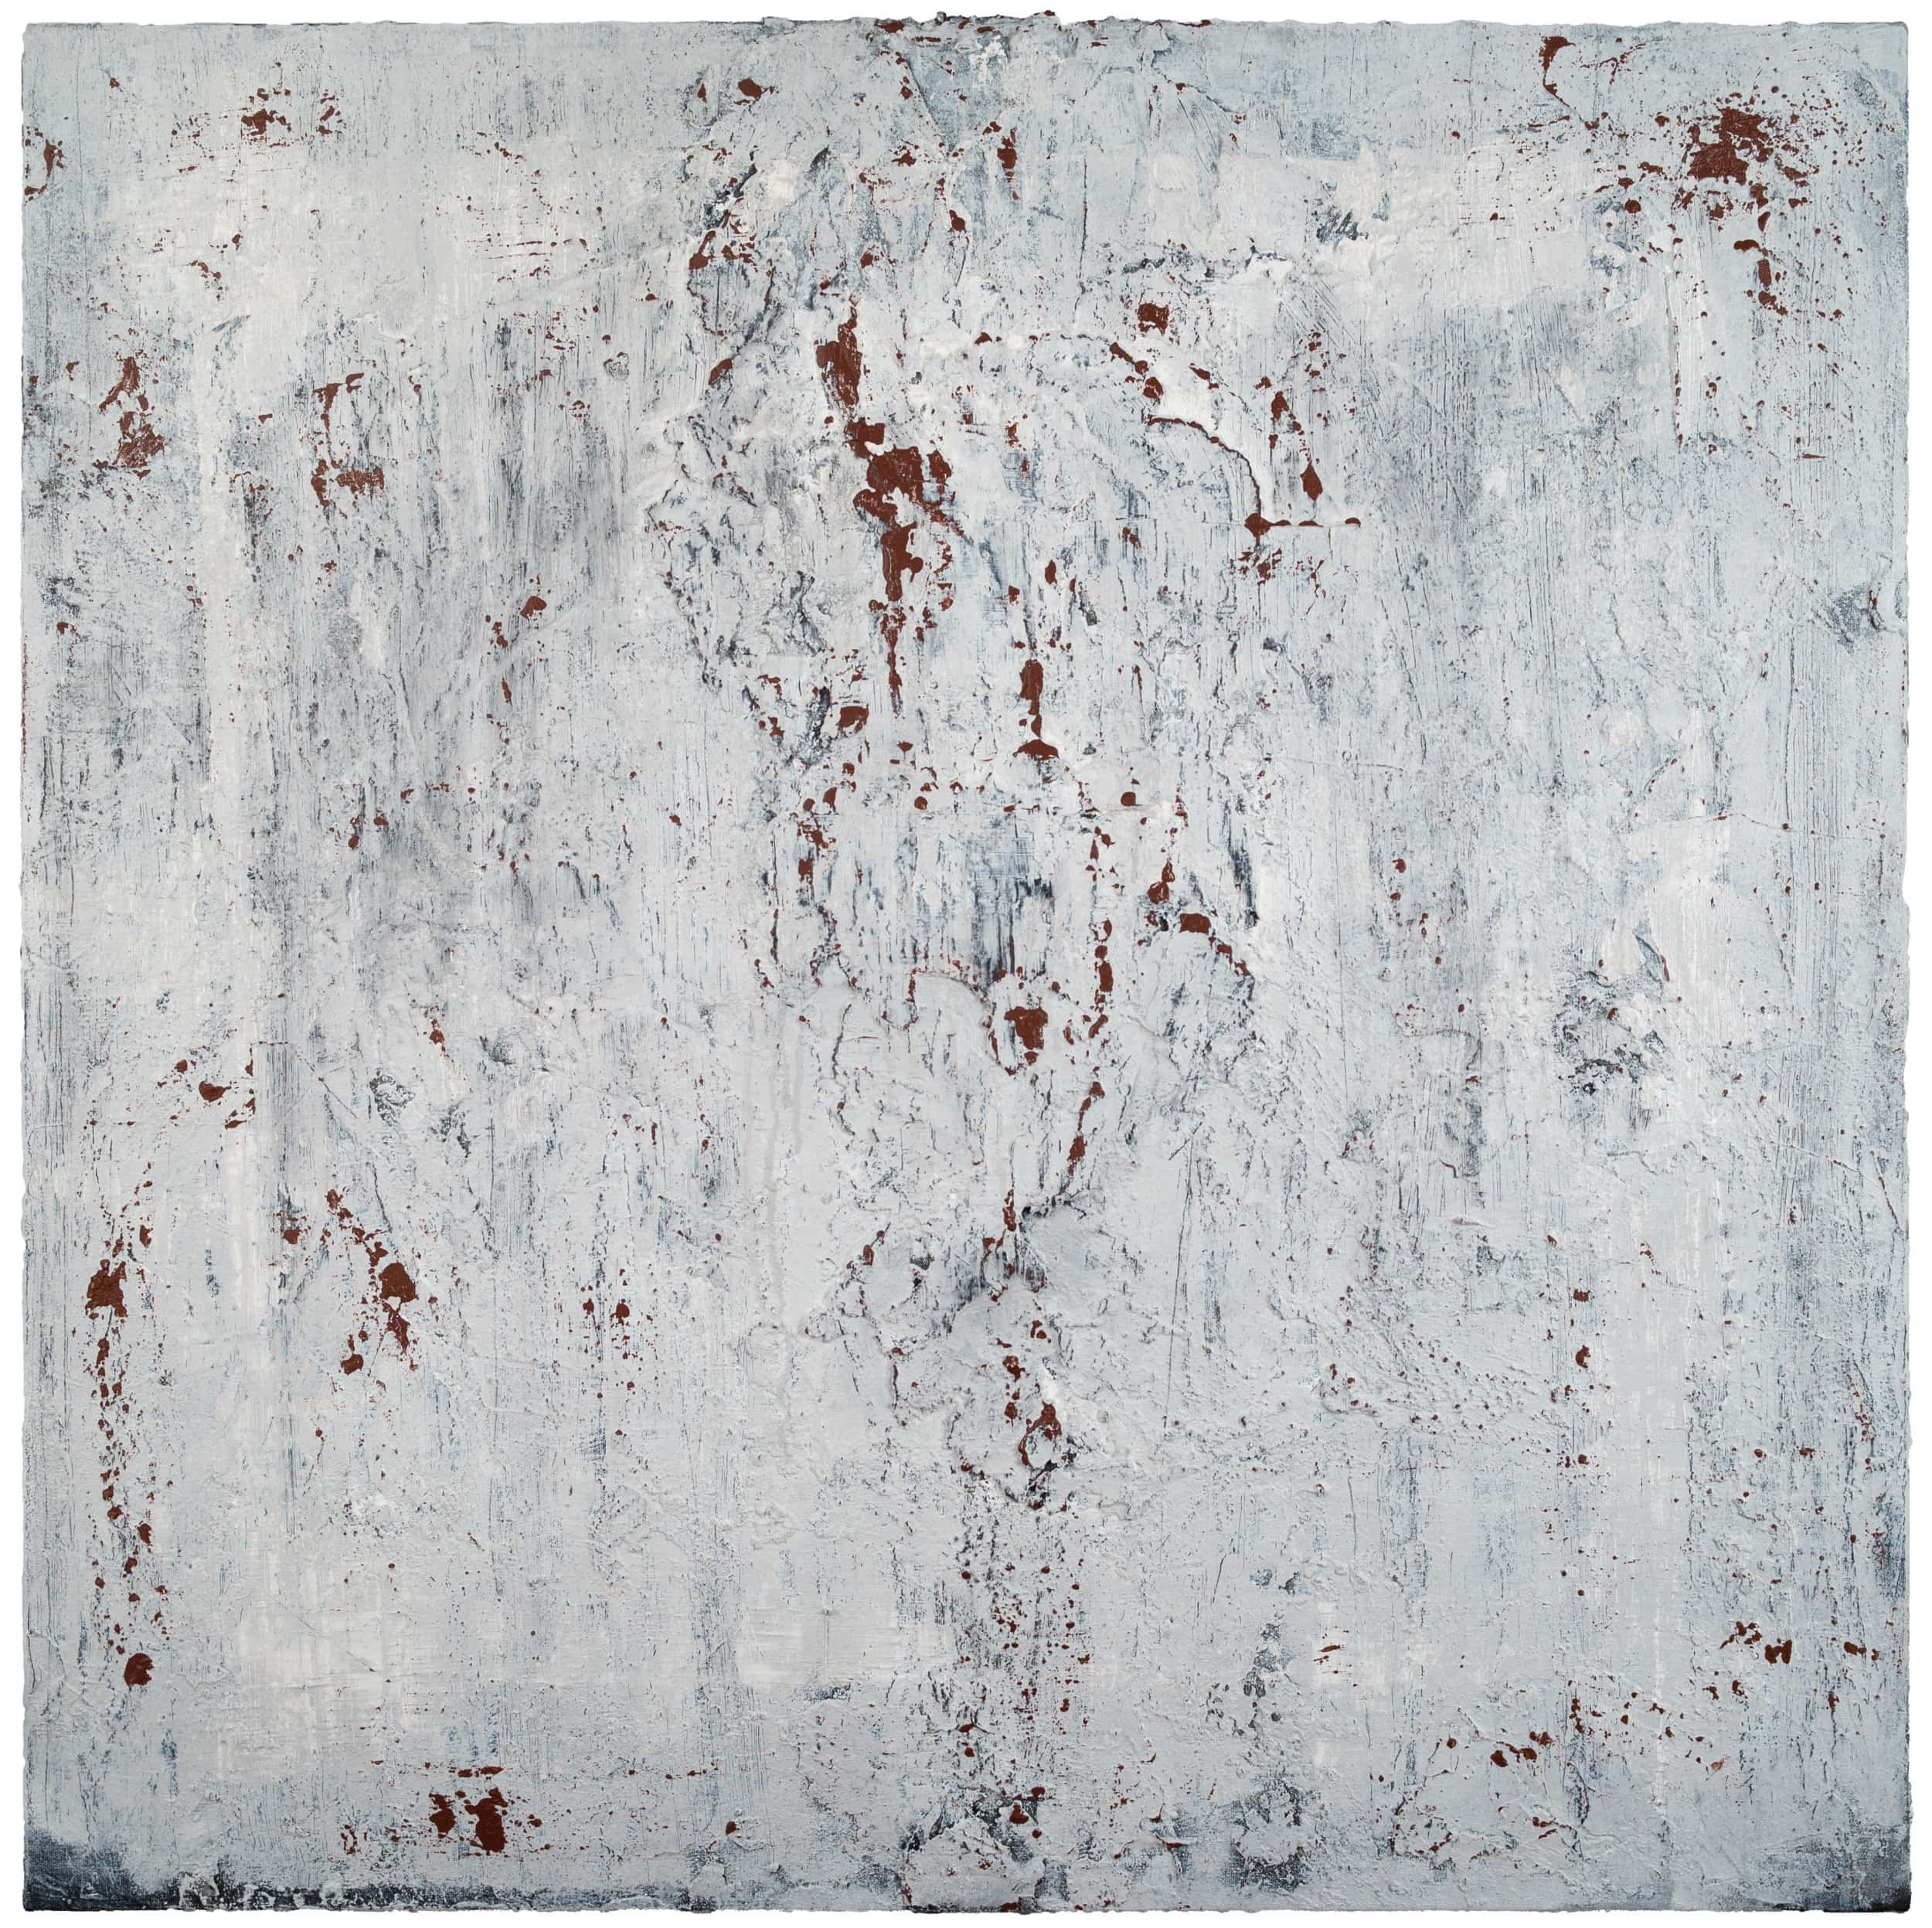 Recur , 2019 Concrete, acrylic, india ink, stucco on canvas 36 × 36 in (91.4 × 91.4 cm)